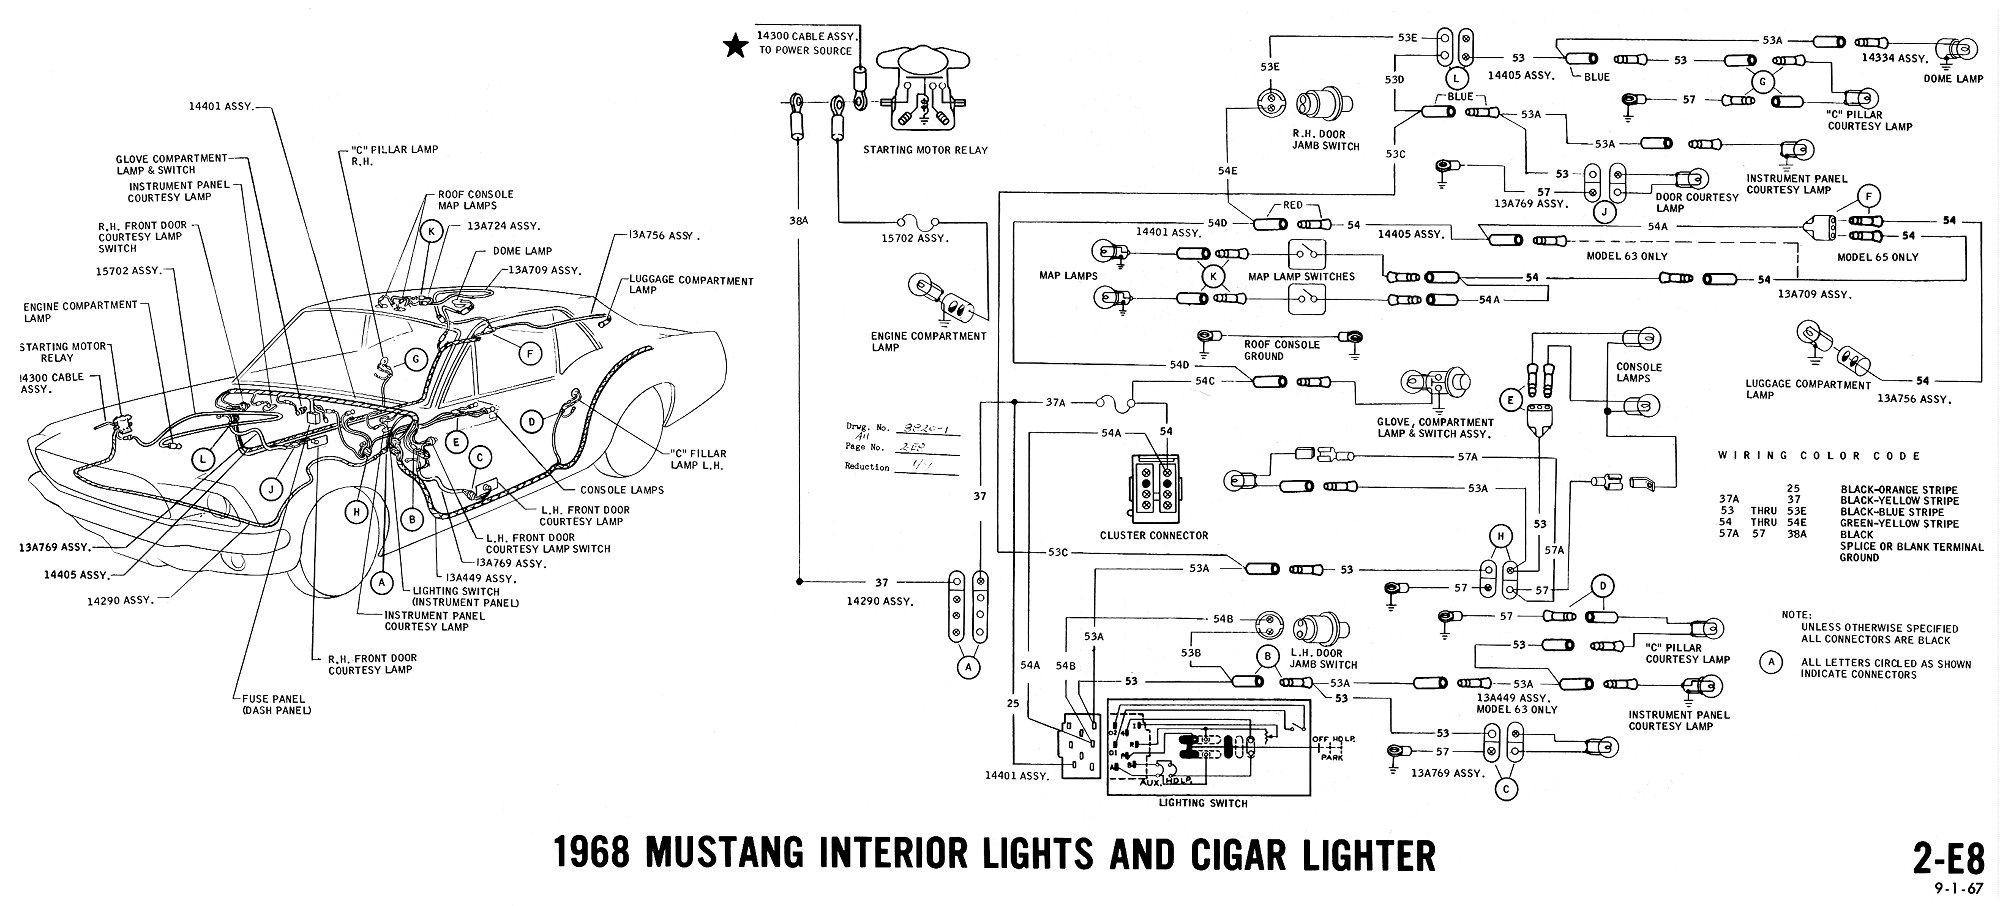 1968 mustang wiring schematic wiring diagram1968 mustang wiring diagrams evolving softwarecigar lighter, interior lights